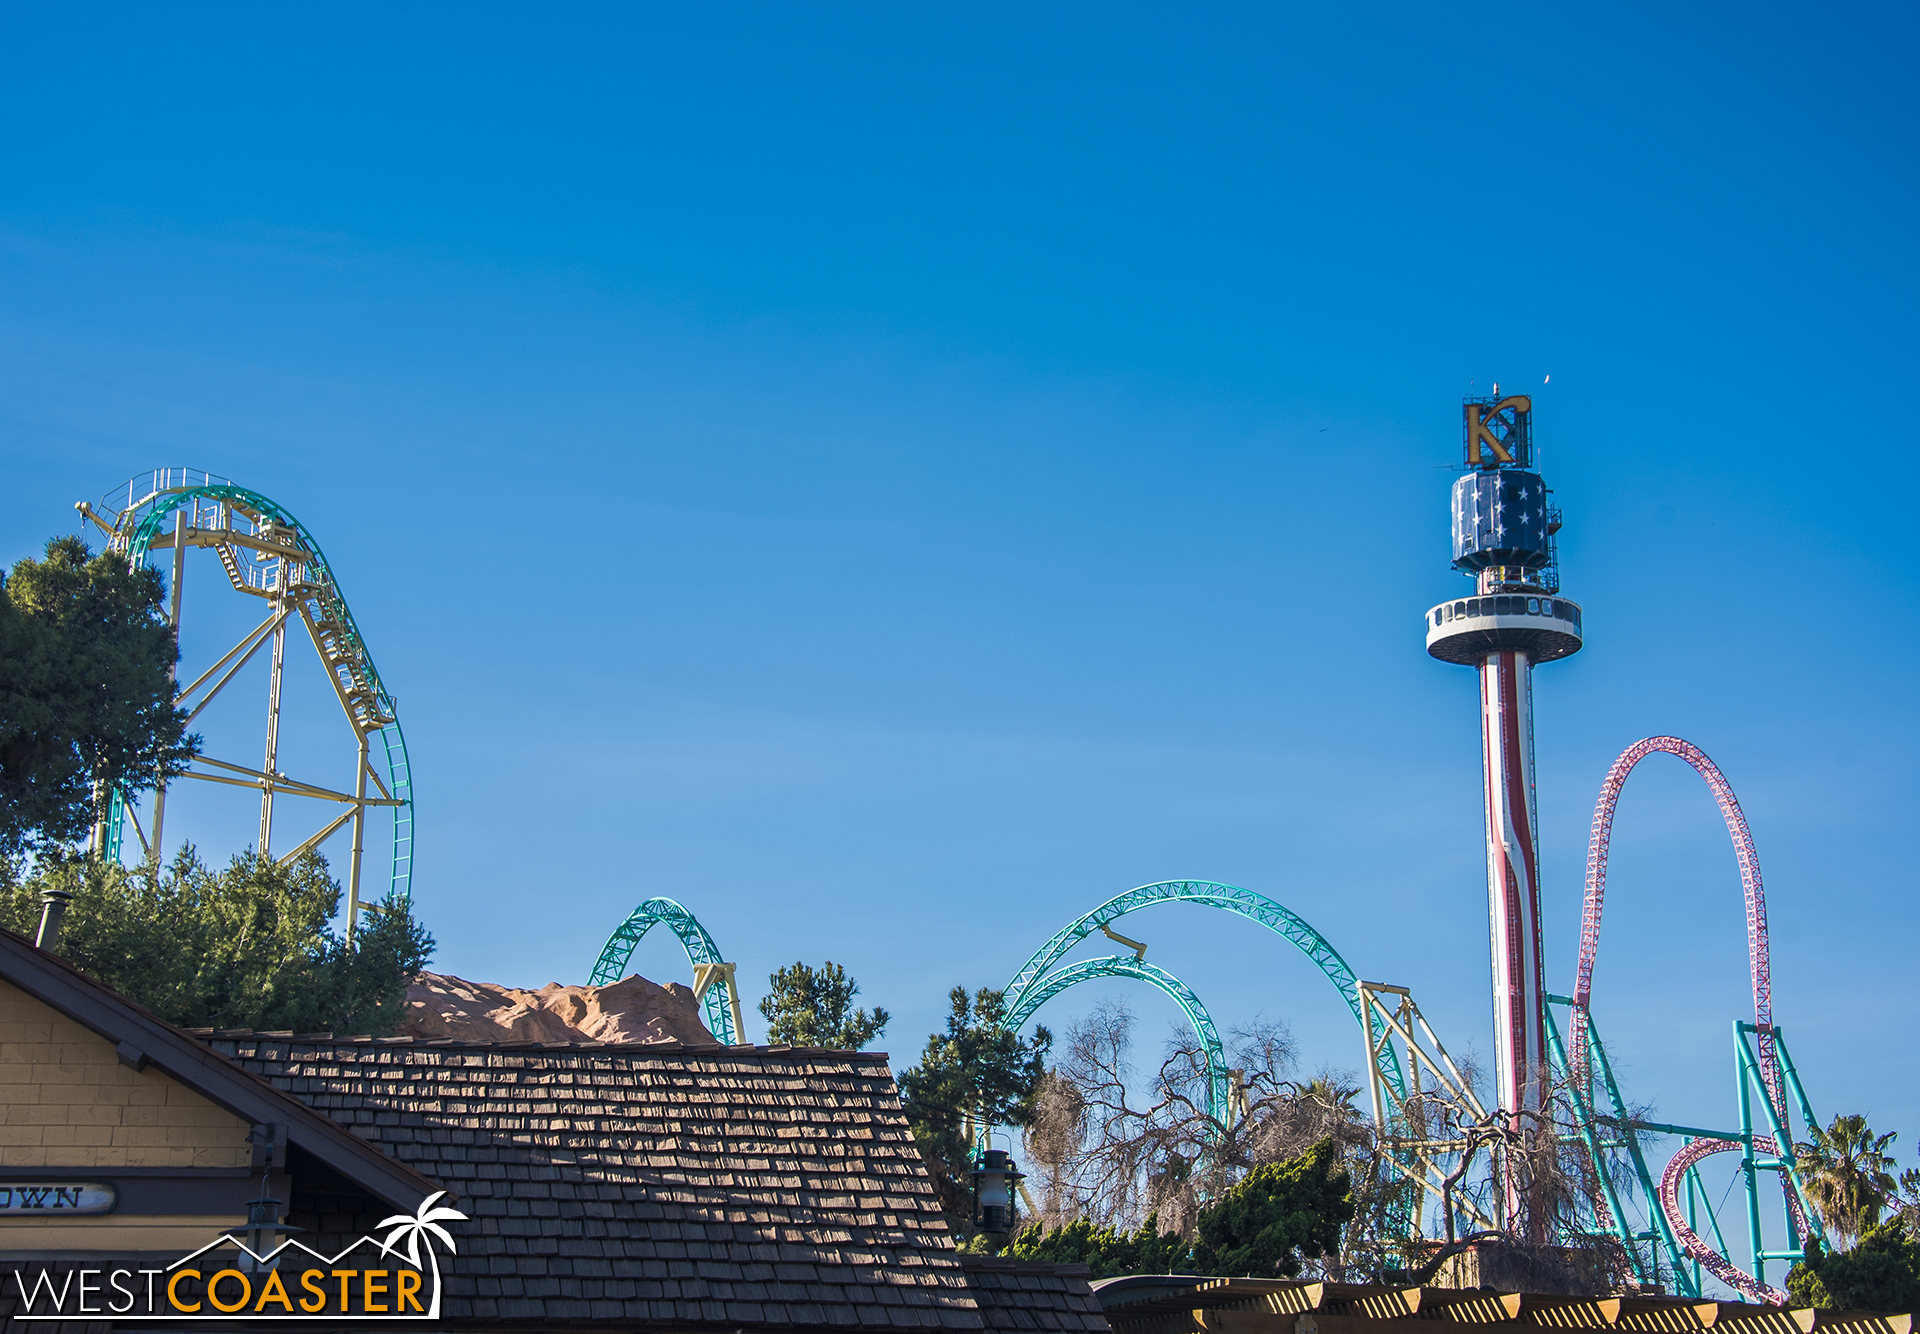 Add this to Knott's ever-progressing skyline!